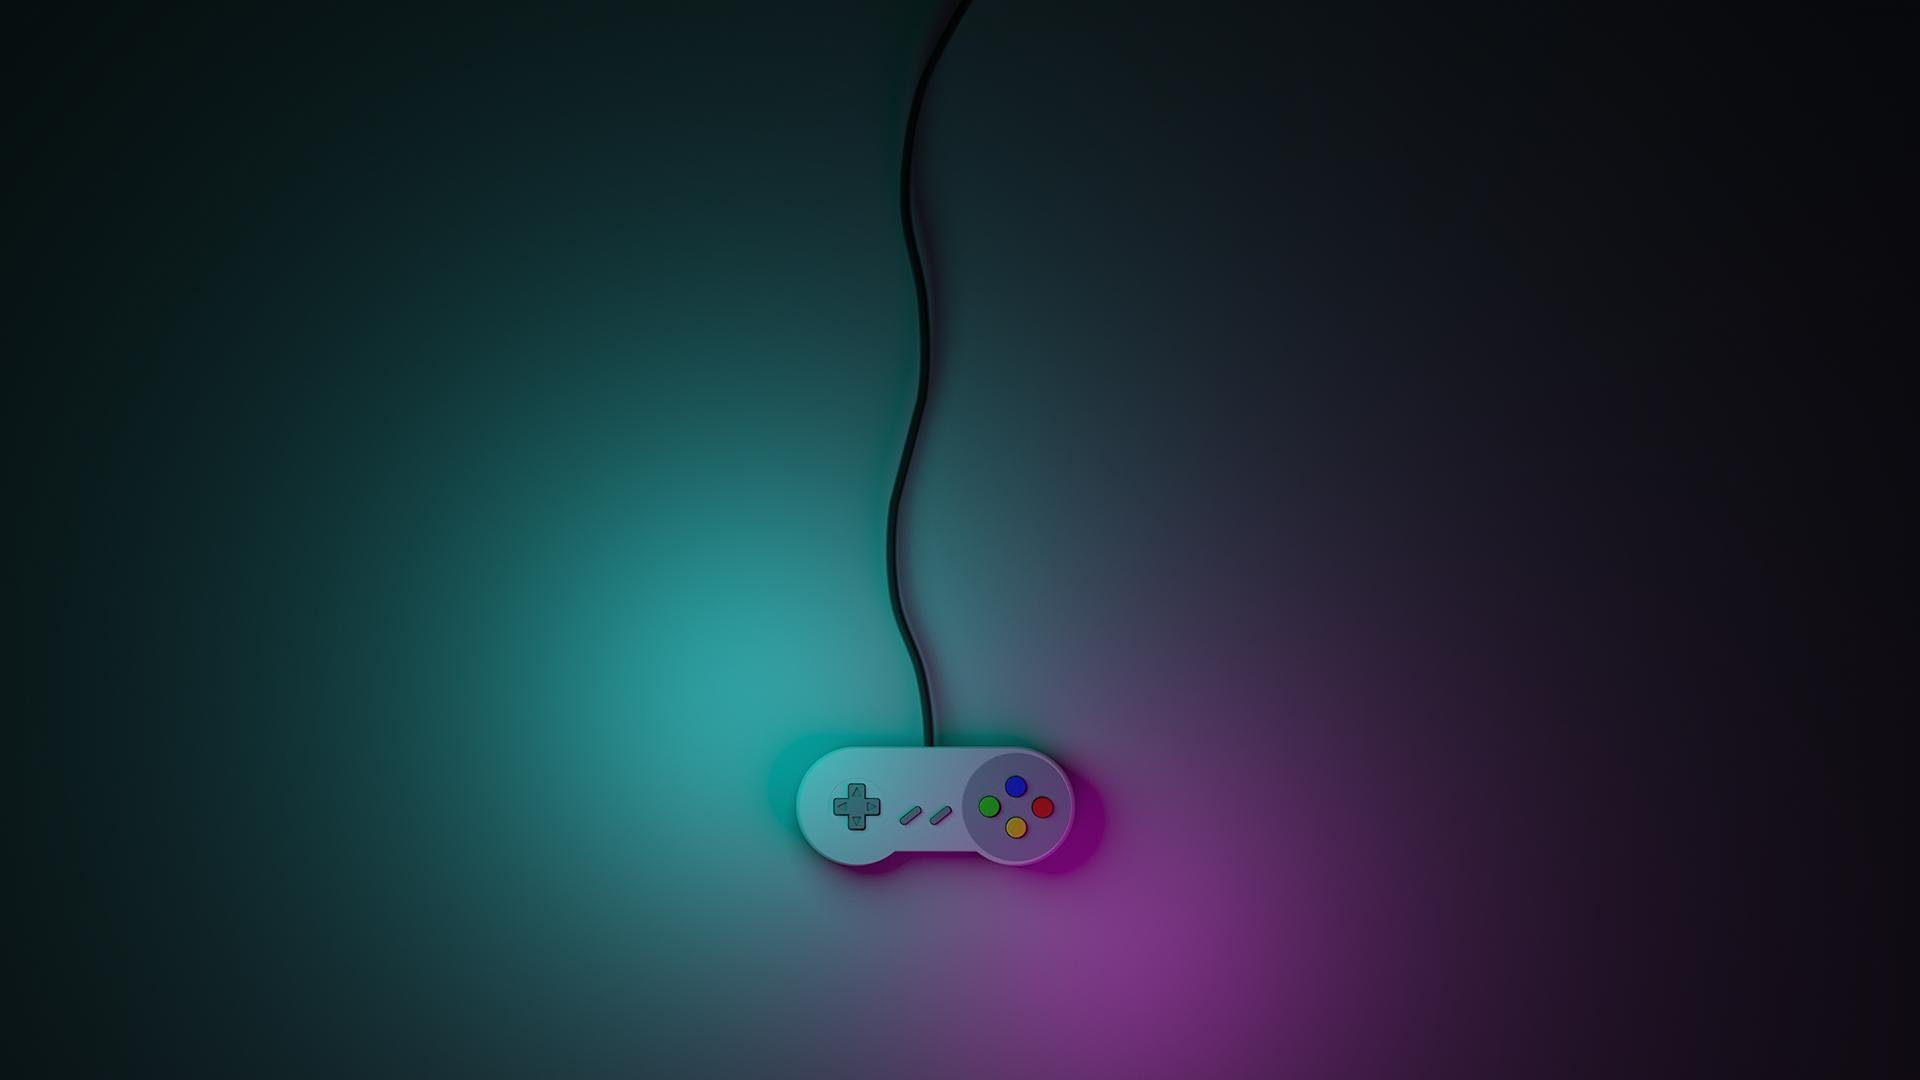 Snes Controller Wallpaper Posted By John Thompson